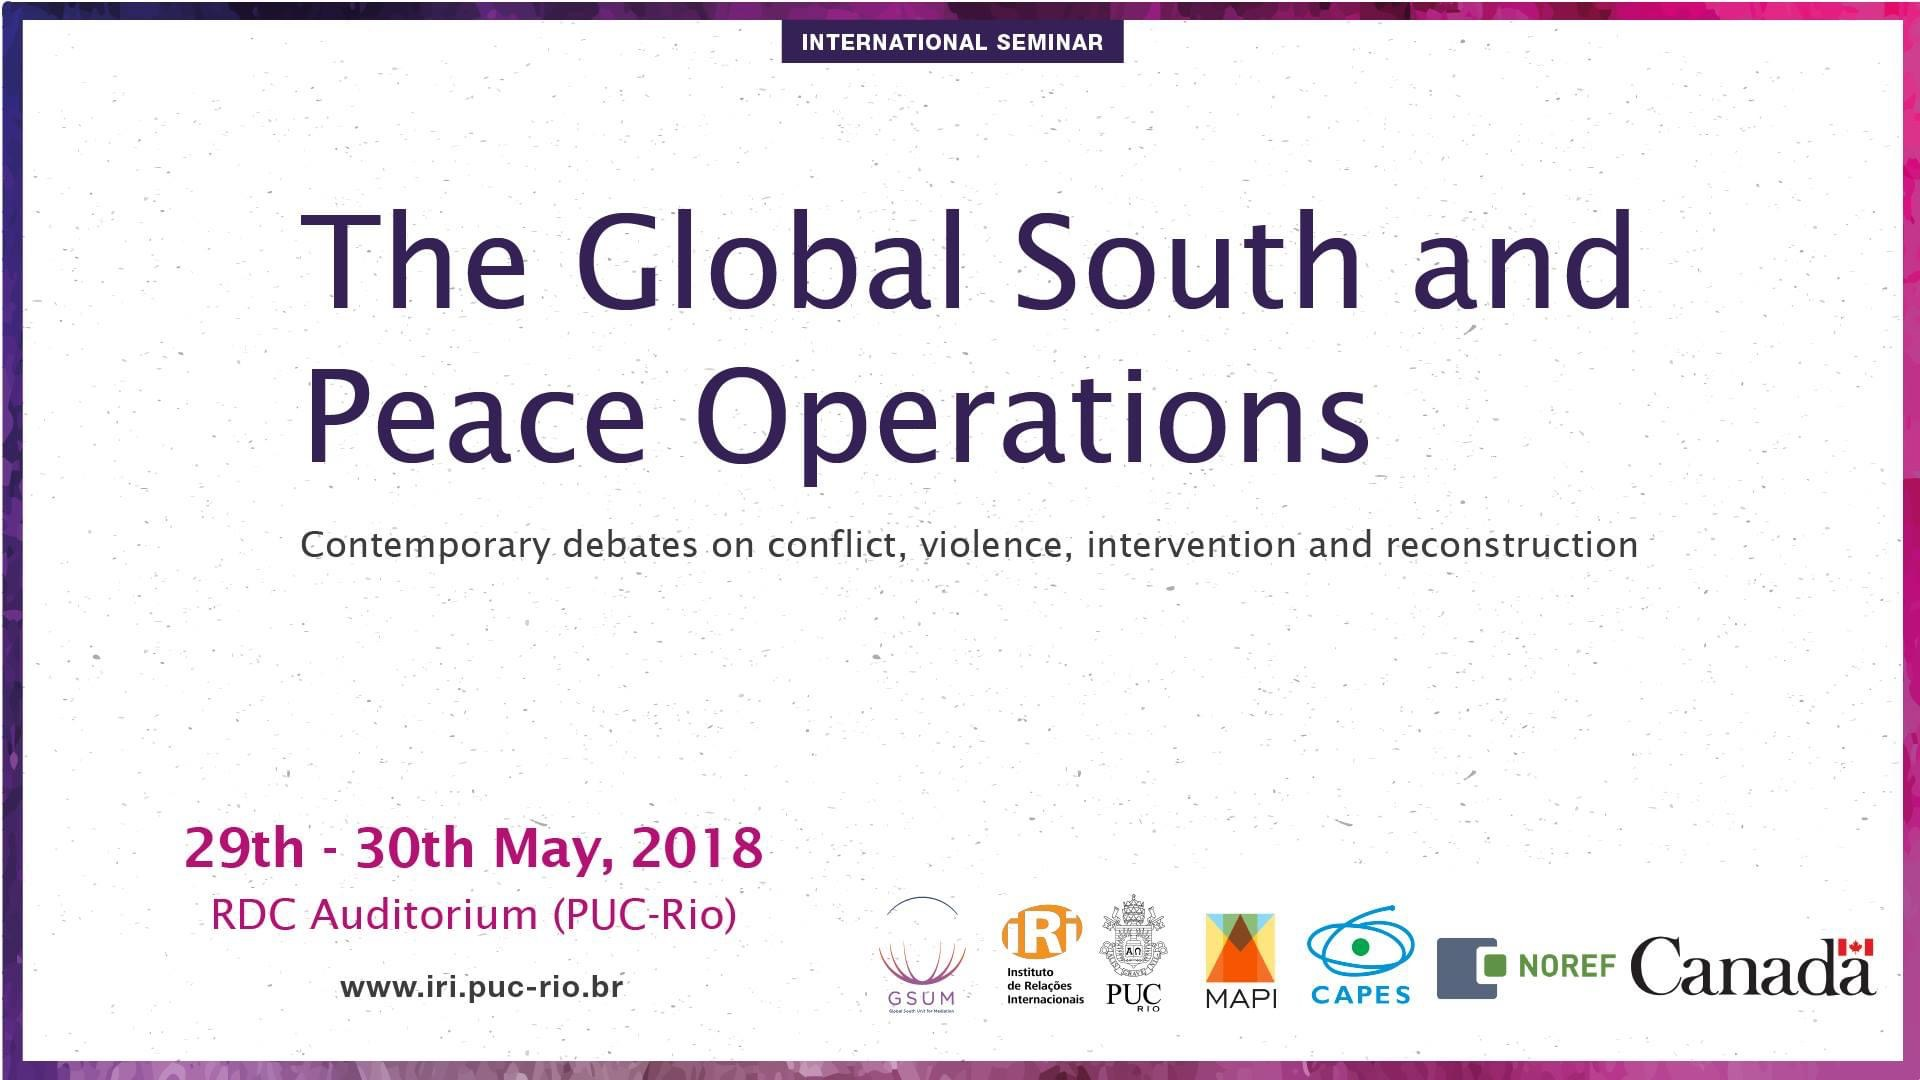 The Global South and Peace Operations: Contemporary debates on conflict, violence, intervention and reconstruction